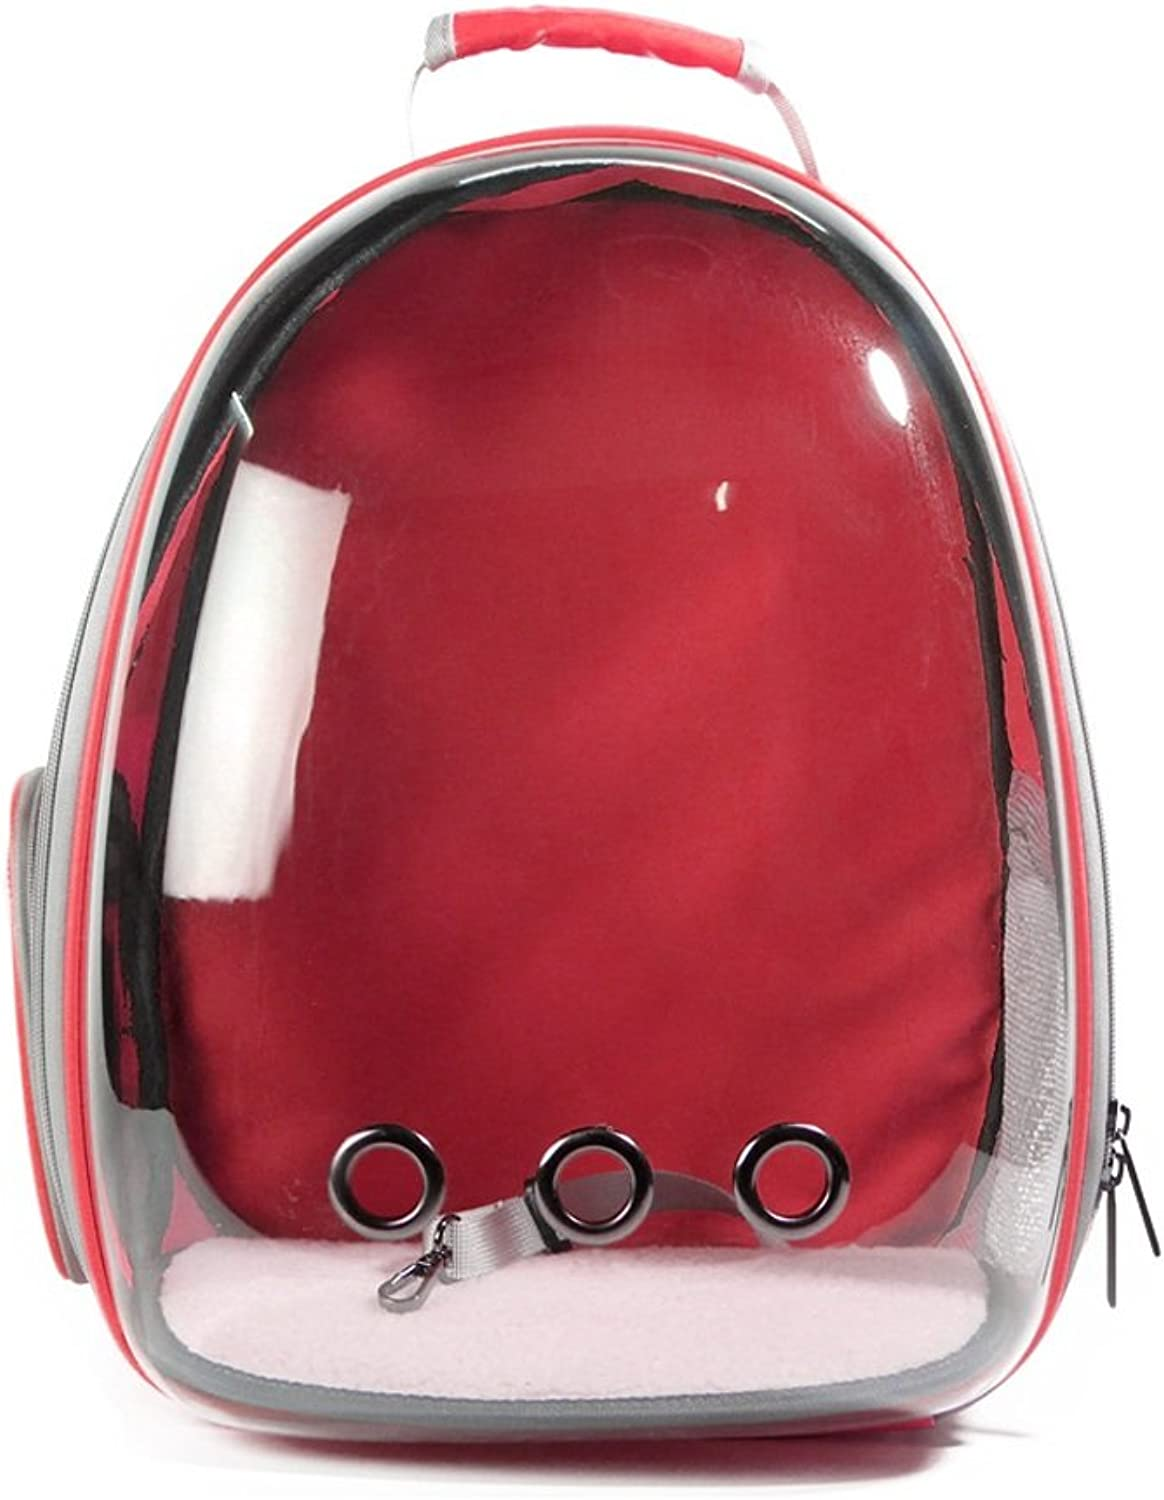 Red Transparent Space Capsule Breathable Waterproof Pet Backpack Carrier Astronaut Pet Cat Dog Puppy Carrier Bubble Travel Bag Outdoor Portable Premium Backpack 33cmX28cmX44cm